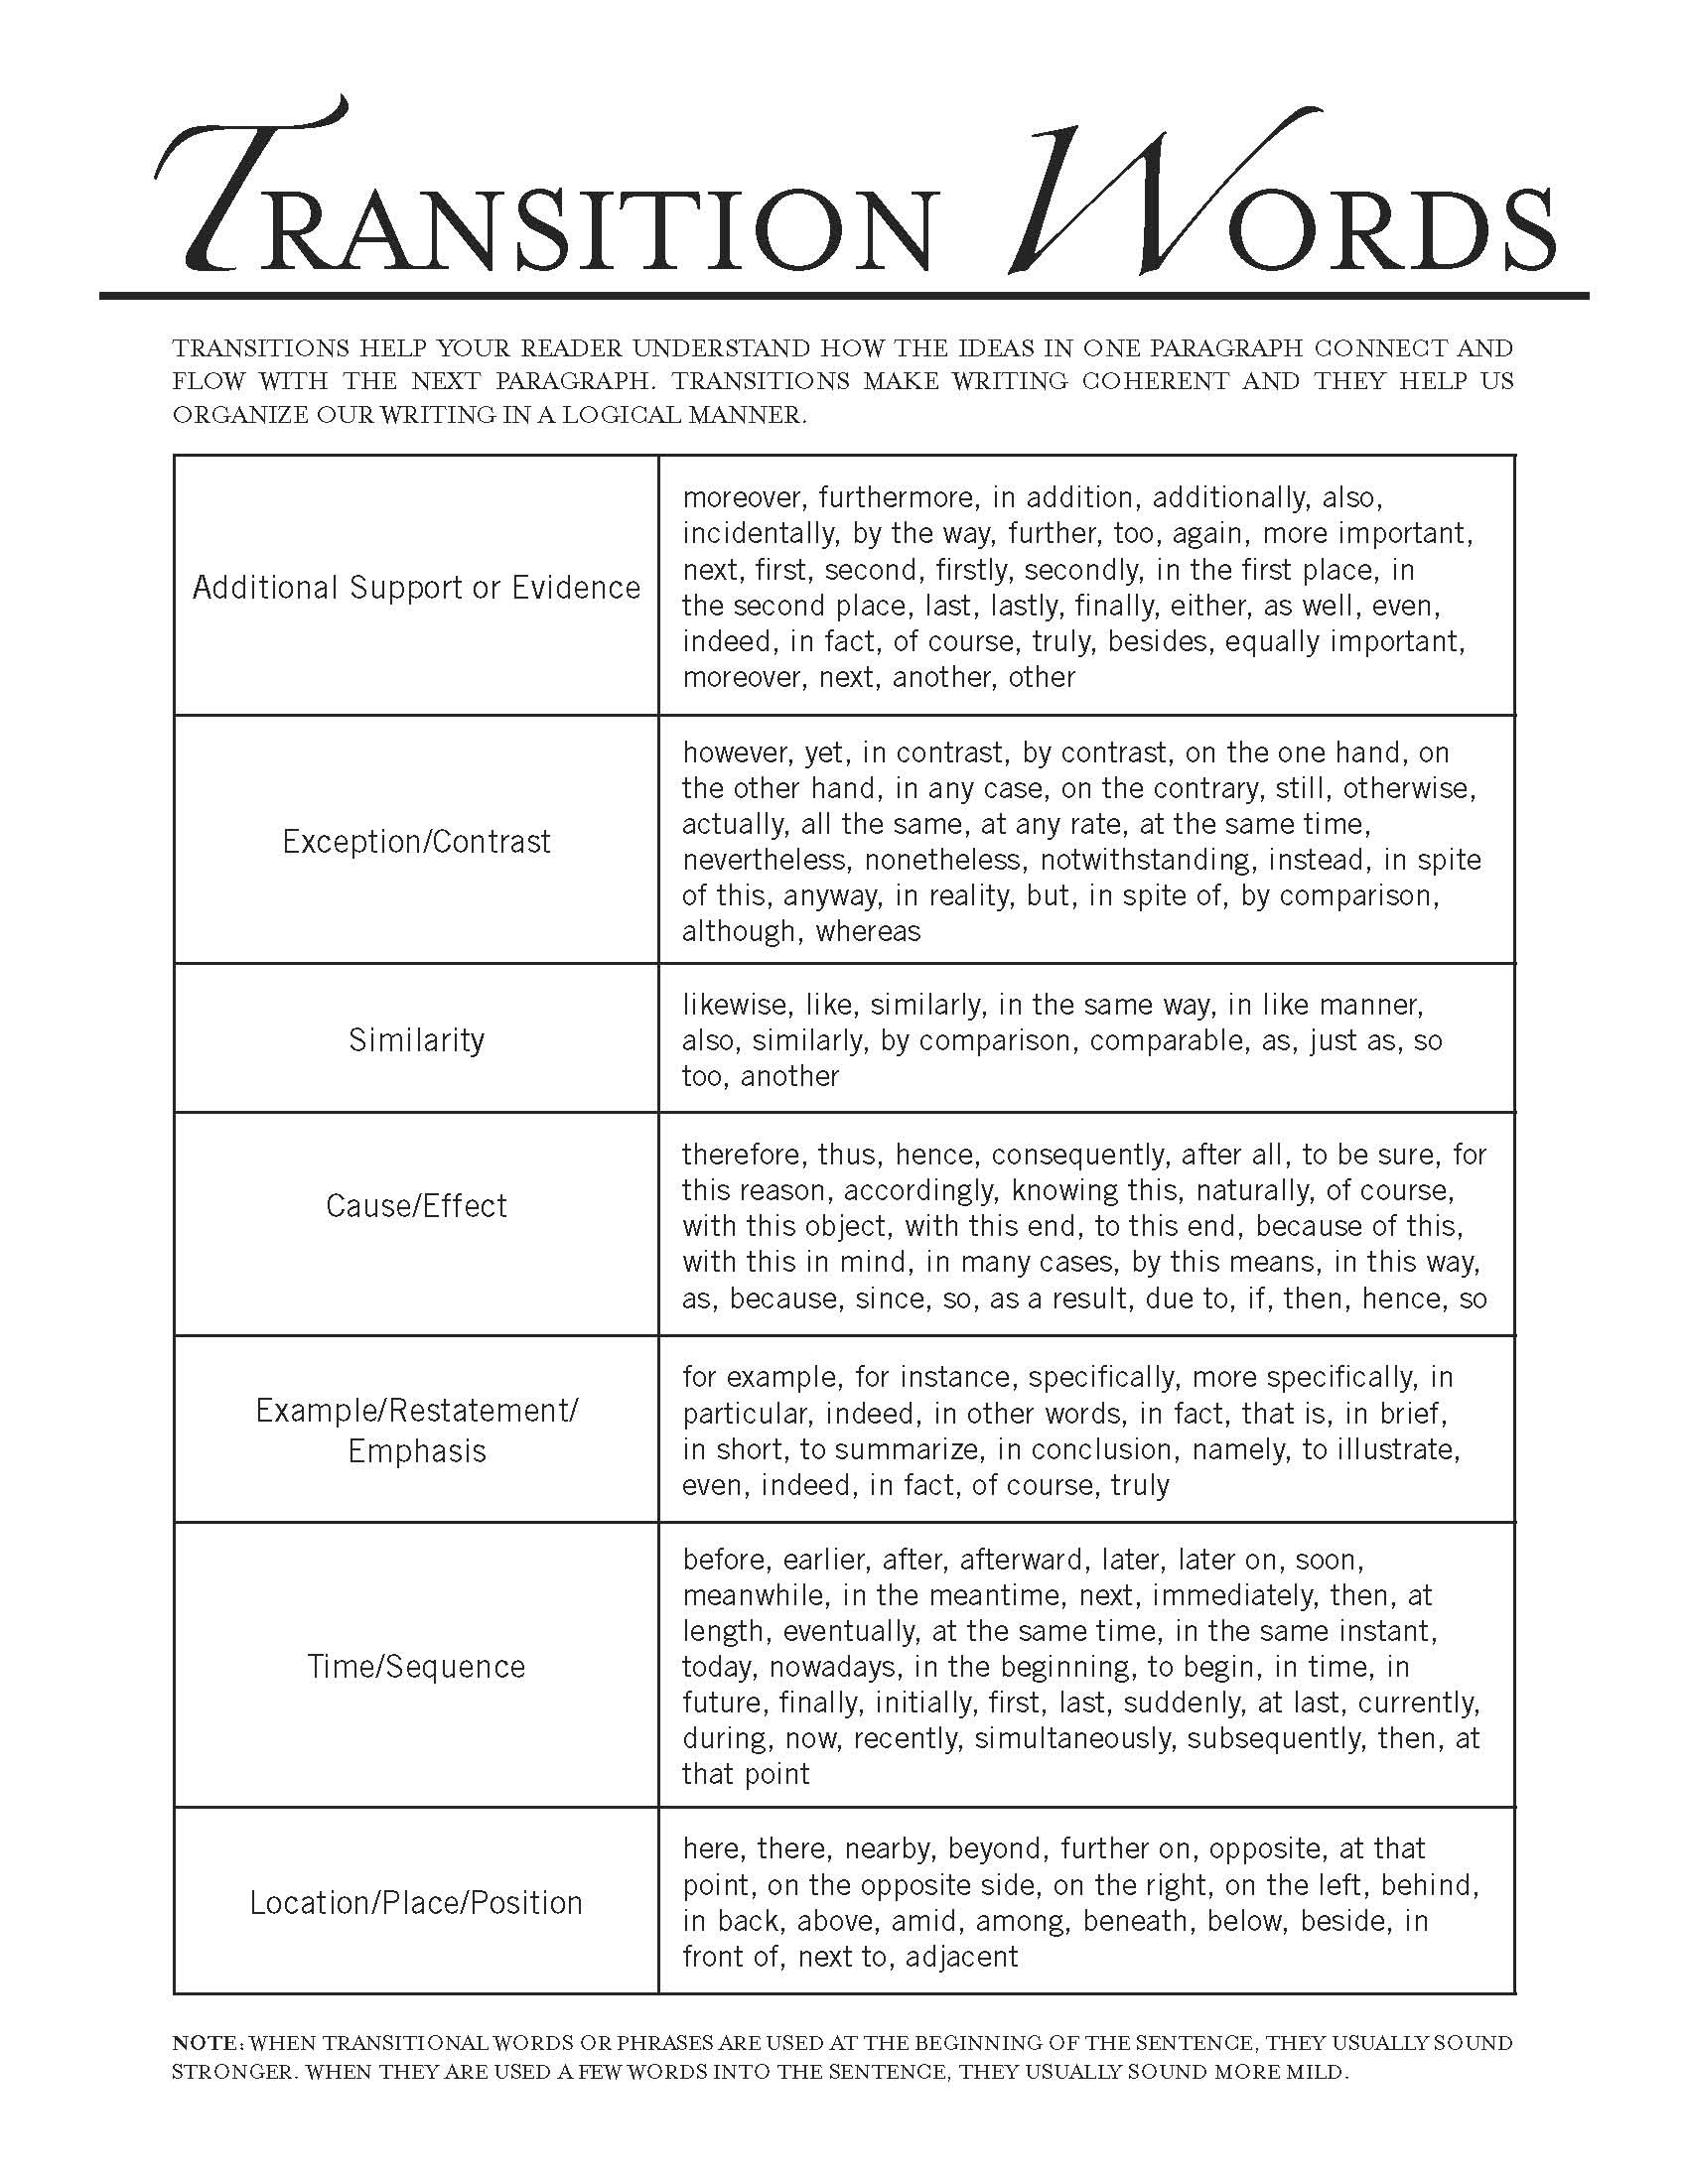 transition phrases for essays transition words amp phrases examples of transition words used in essays essaygood transition words for an essay